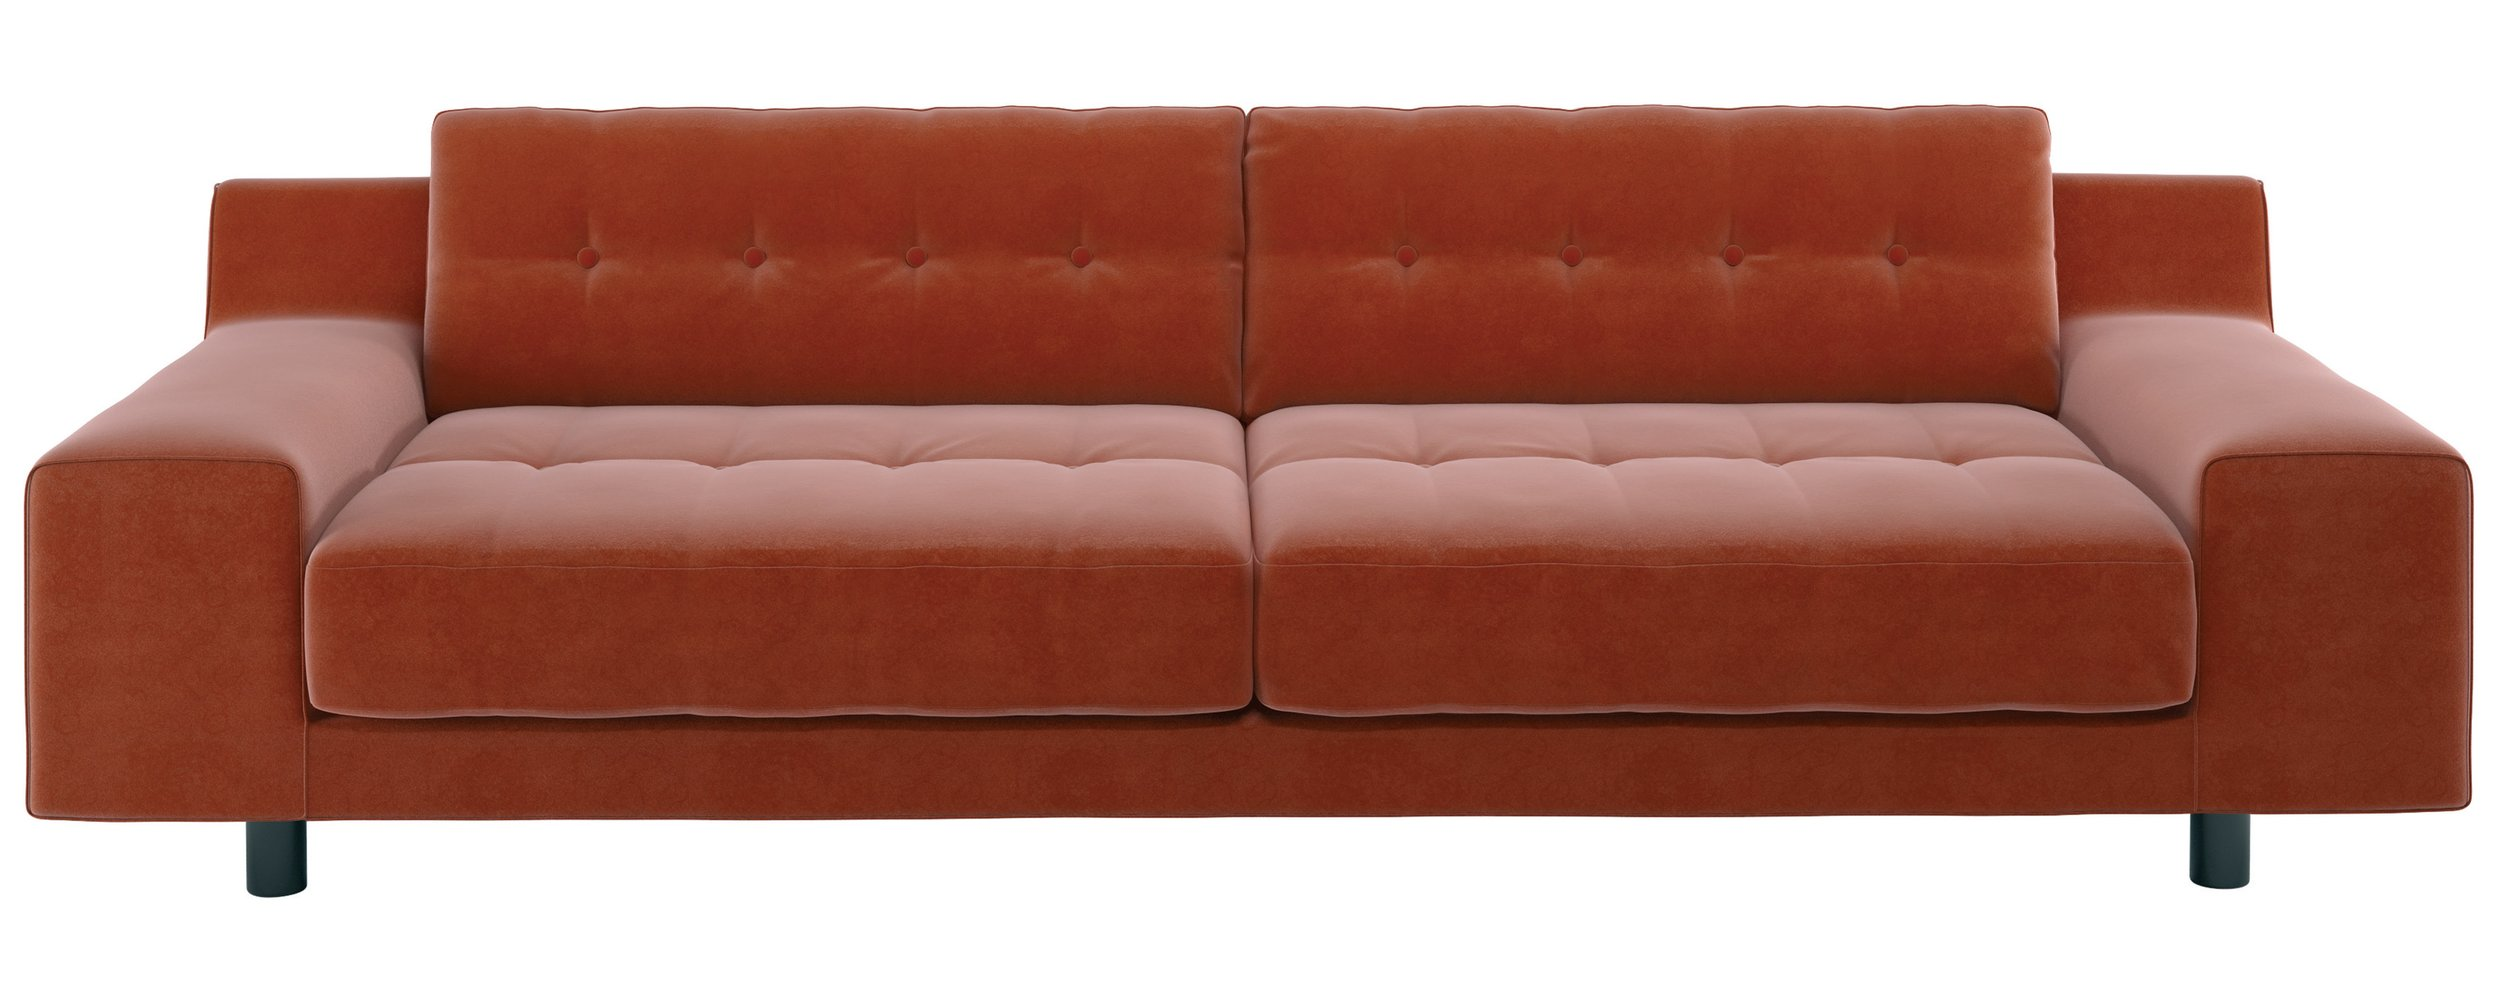 Hendricks 3 seater sofa.jpg